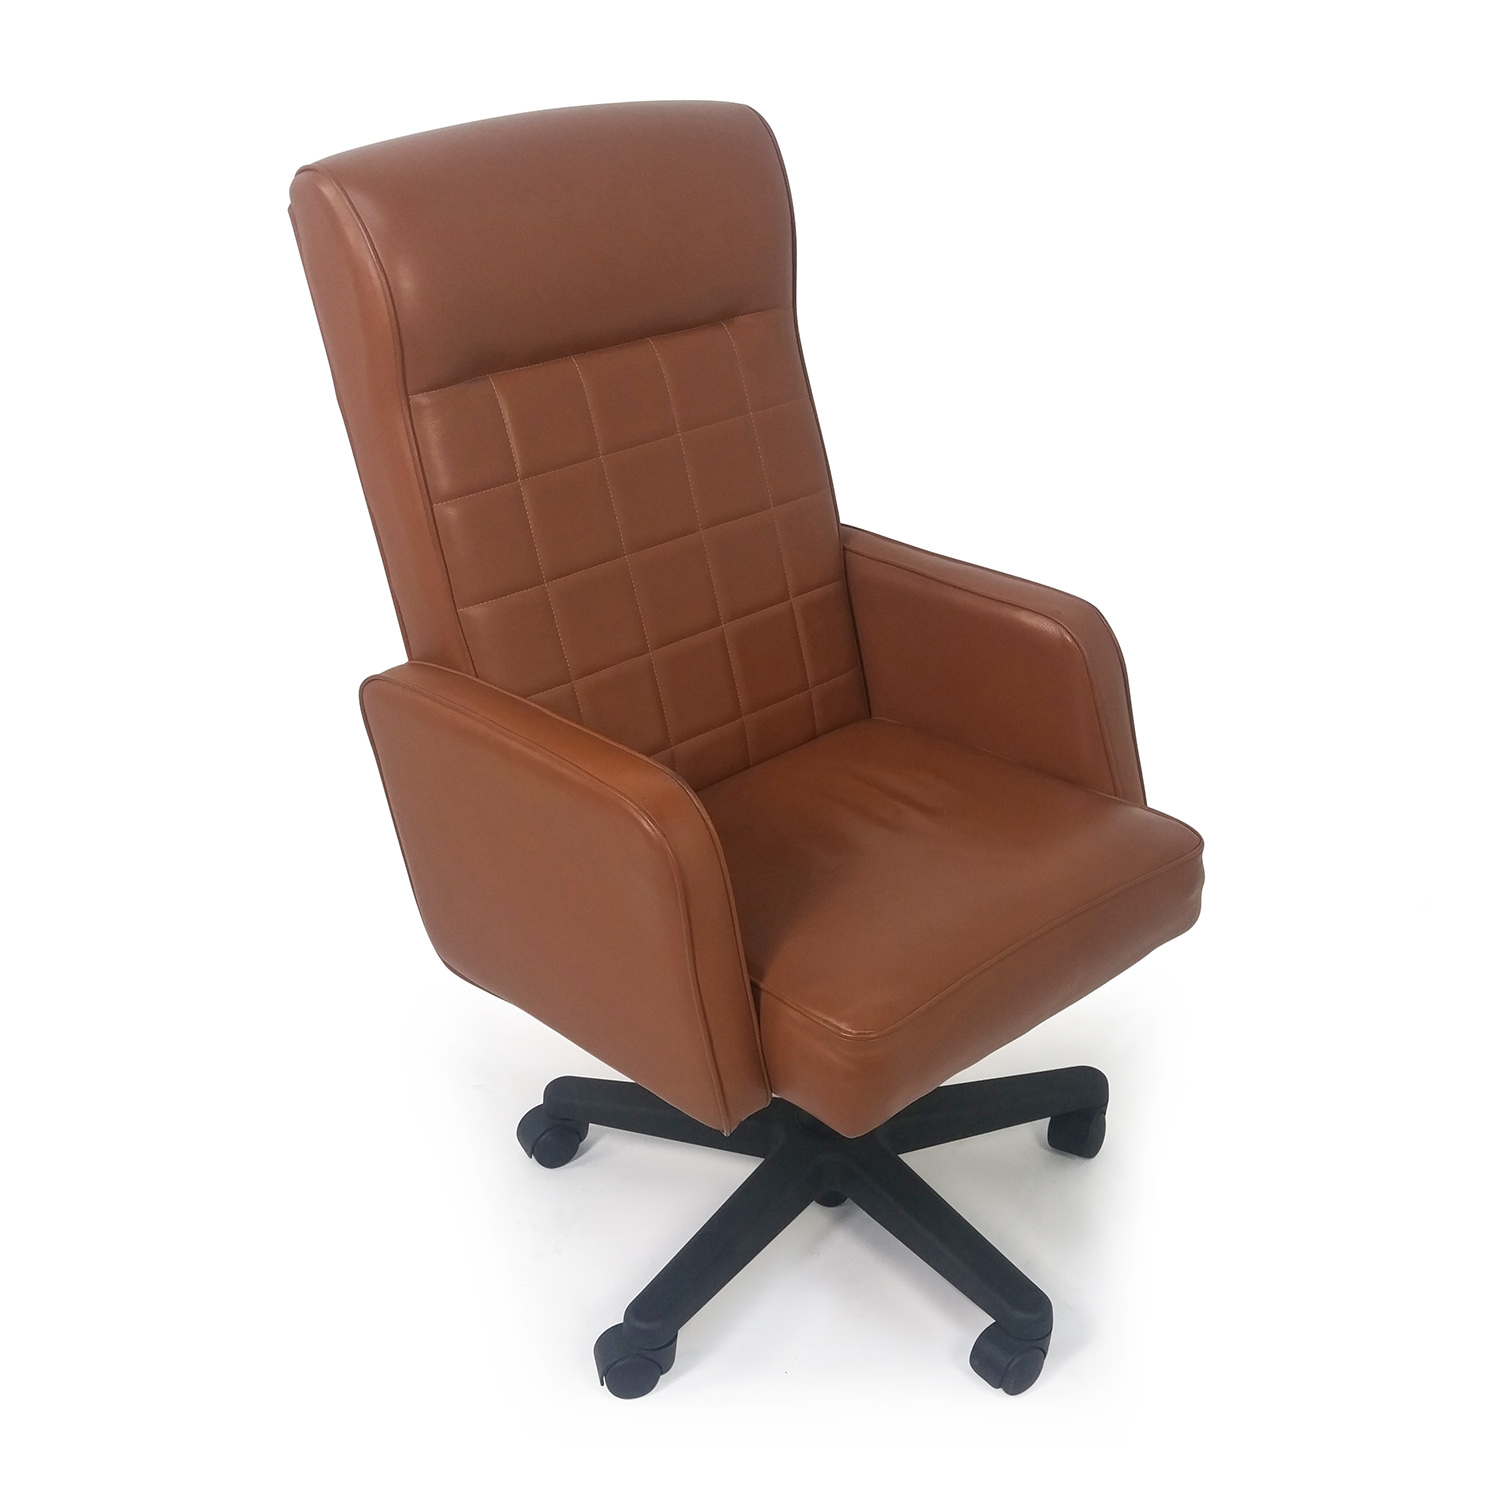 90 off leather executive chair chairs for Furniture 90 off